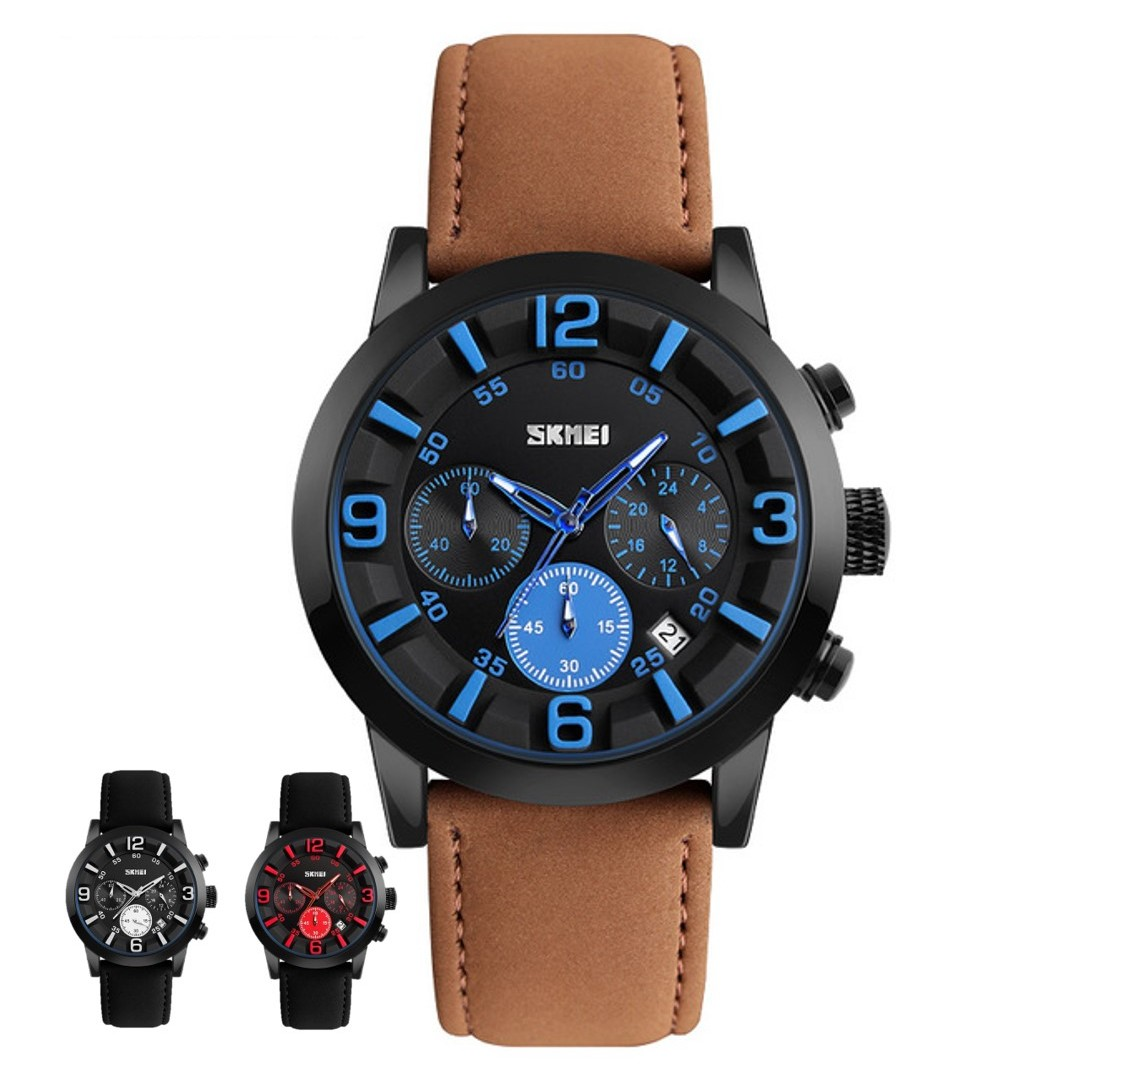 SKMEI Sports Quartz Watch 9147 - Men Fashion Watch Water Resist